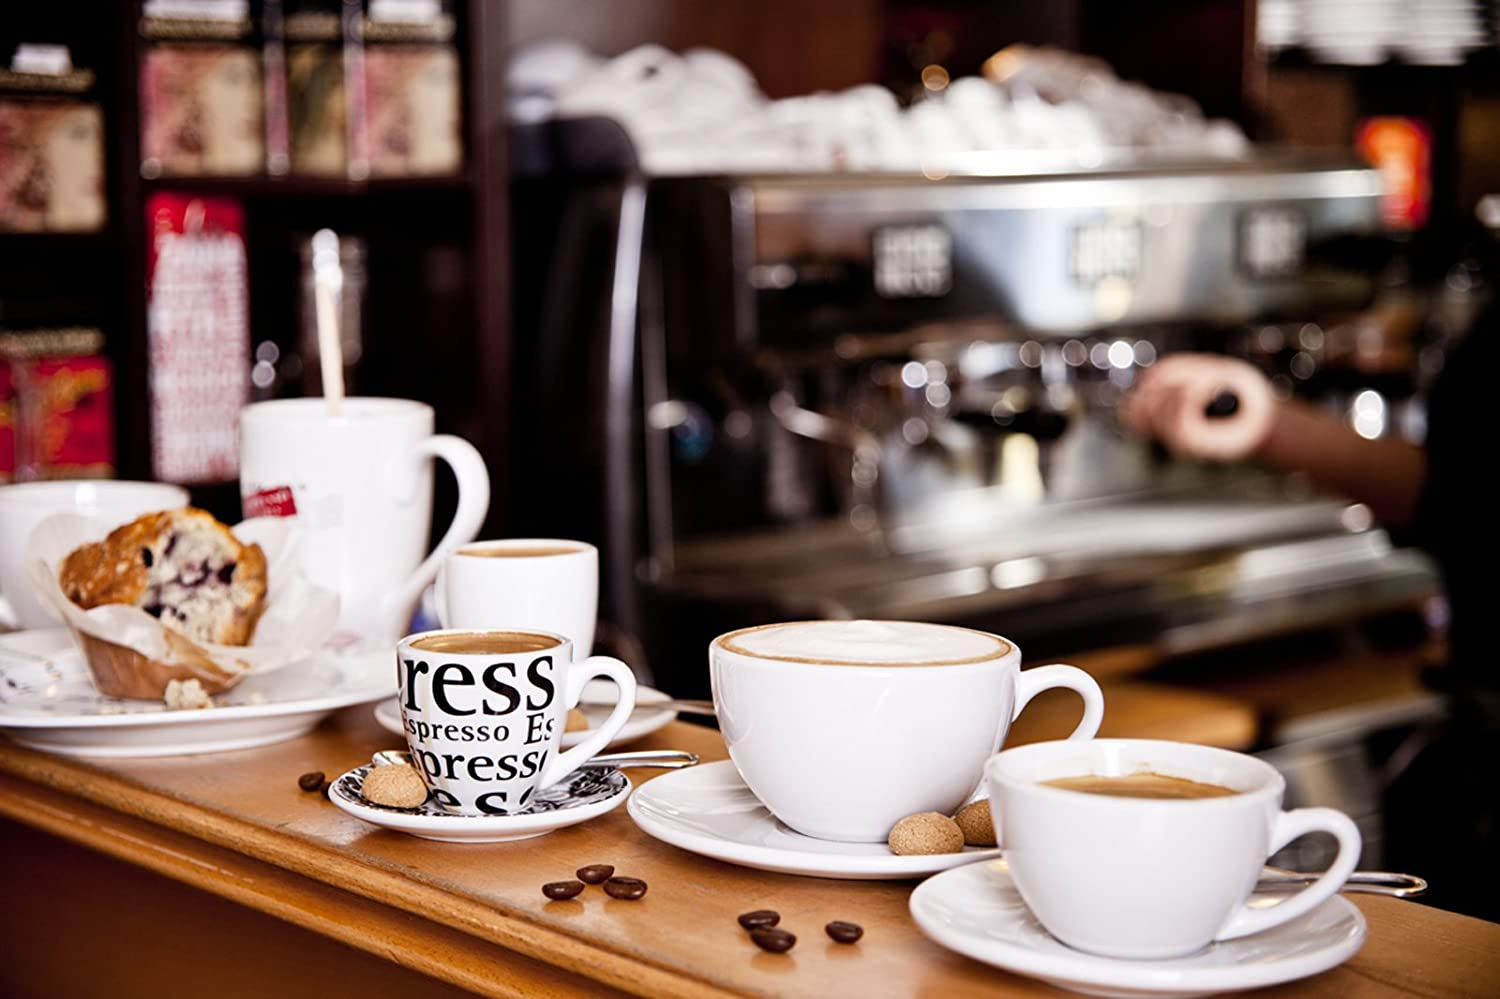 konitz coffee bar cappuccino ounce cups and saucers set of   - konitz coffee bar cappuccino ounce cups and saucers set of  whiteamazonca home  kitchen